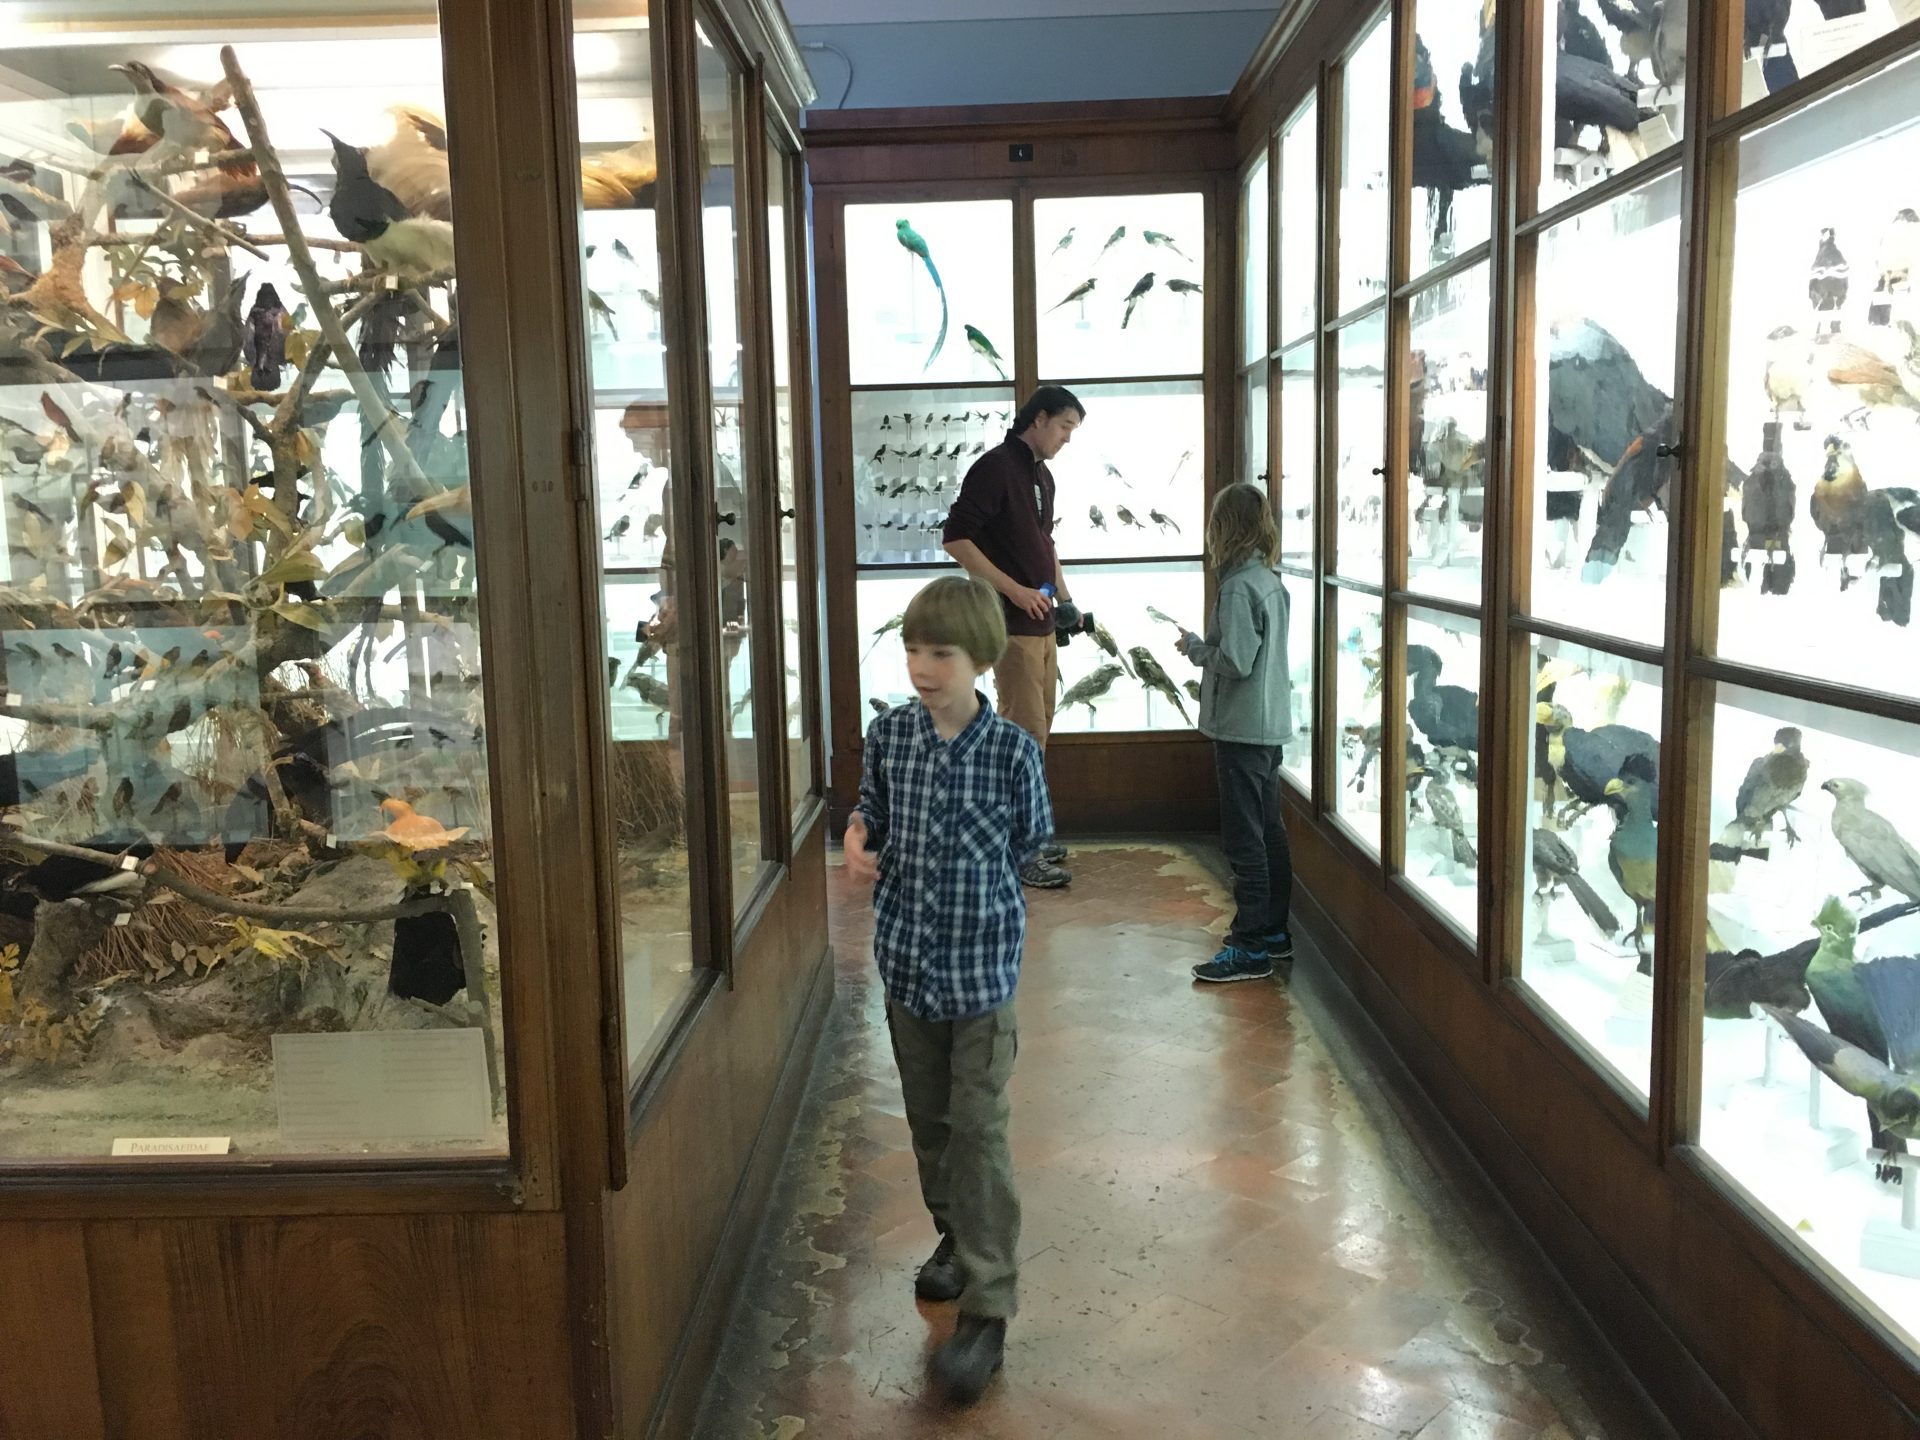 Things to do with kids in Florence Italy include la specola